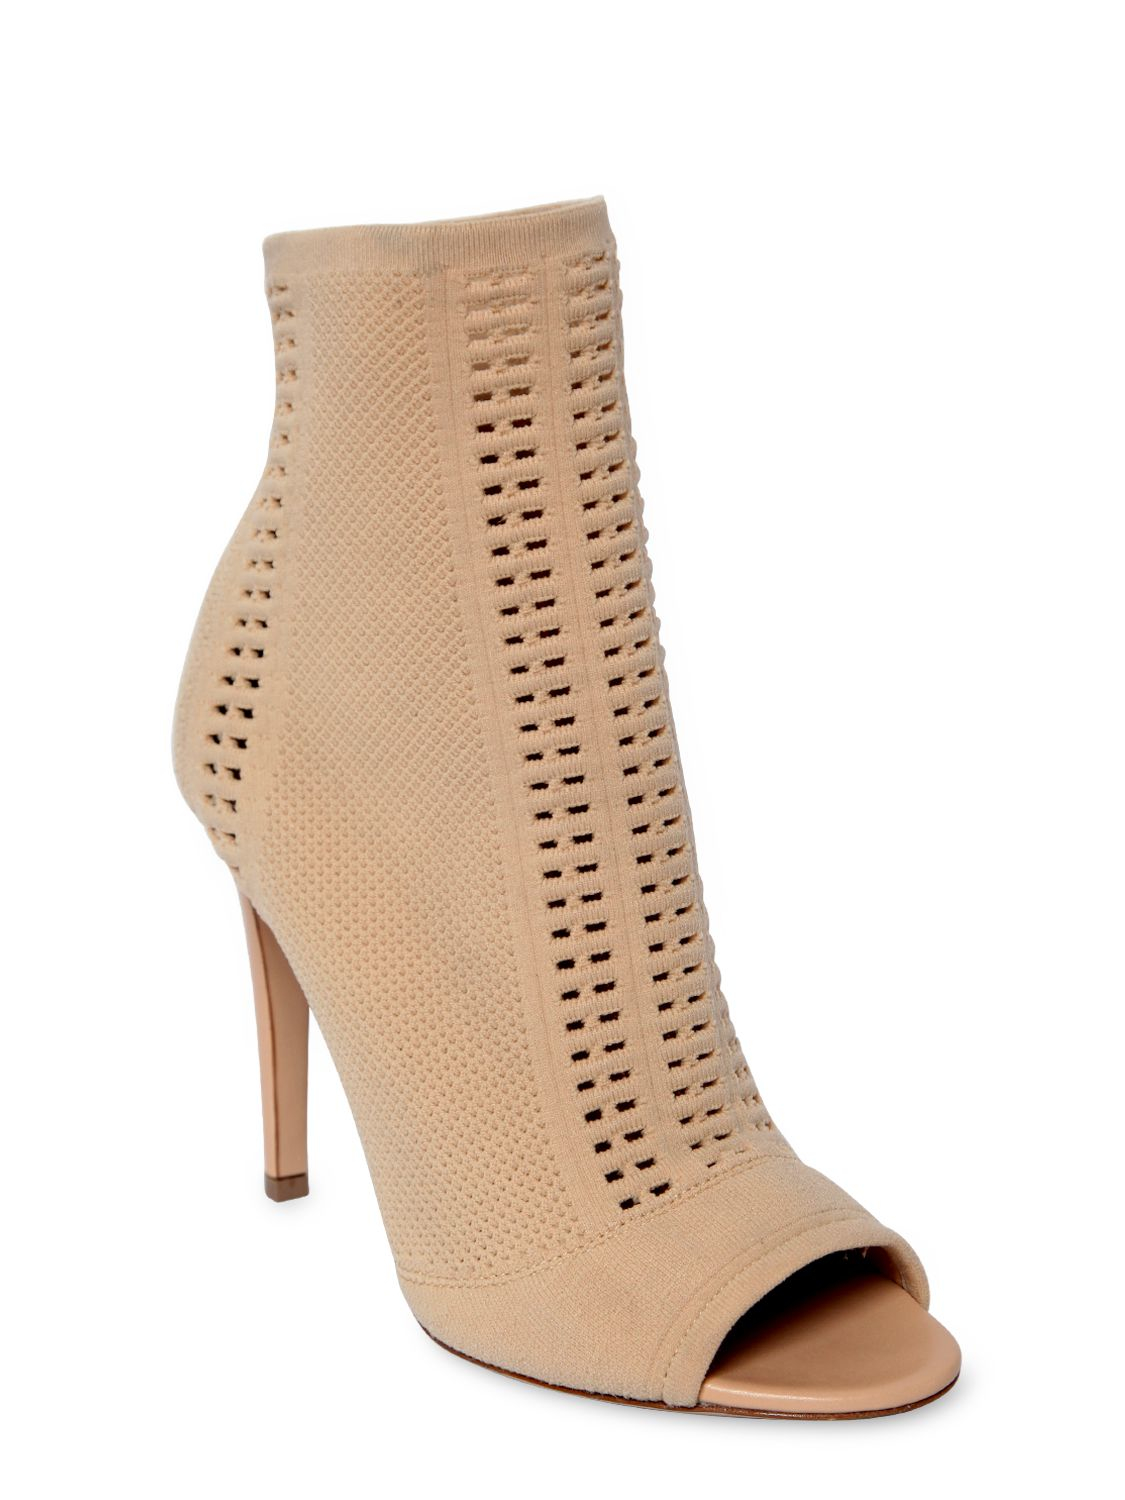 Gianvito Rossi 100MM VIRES STRETCH KNIT OPEN TOE BOOTS cW4CrUrG